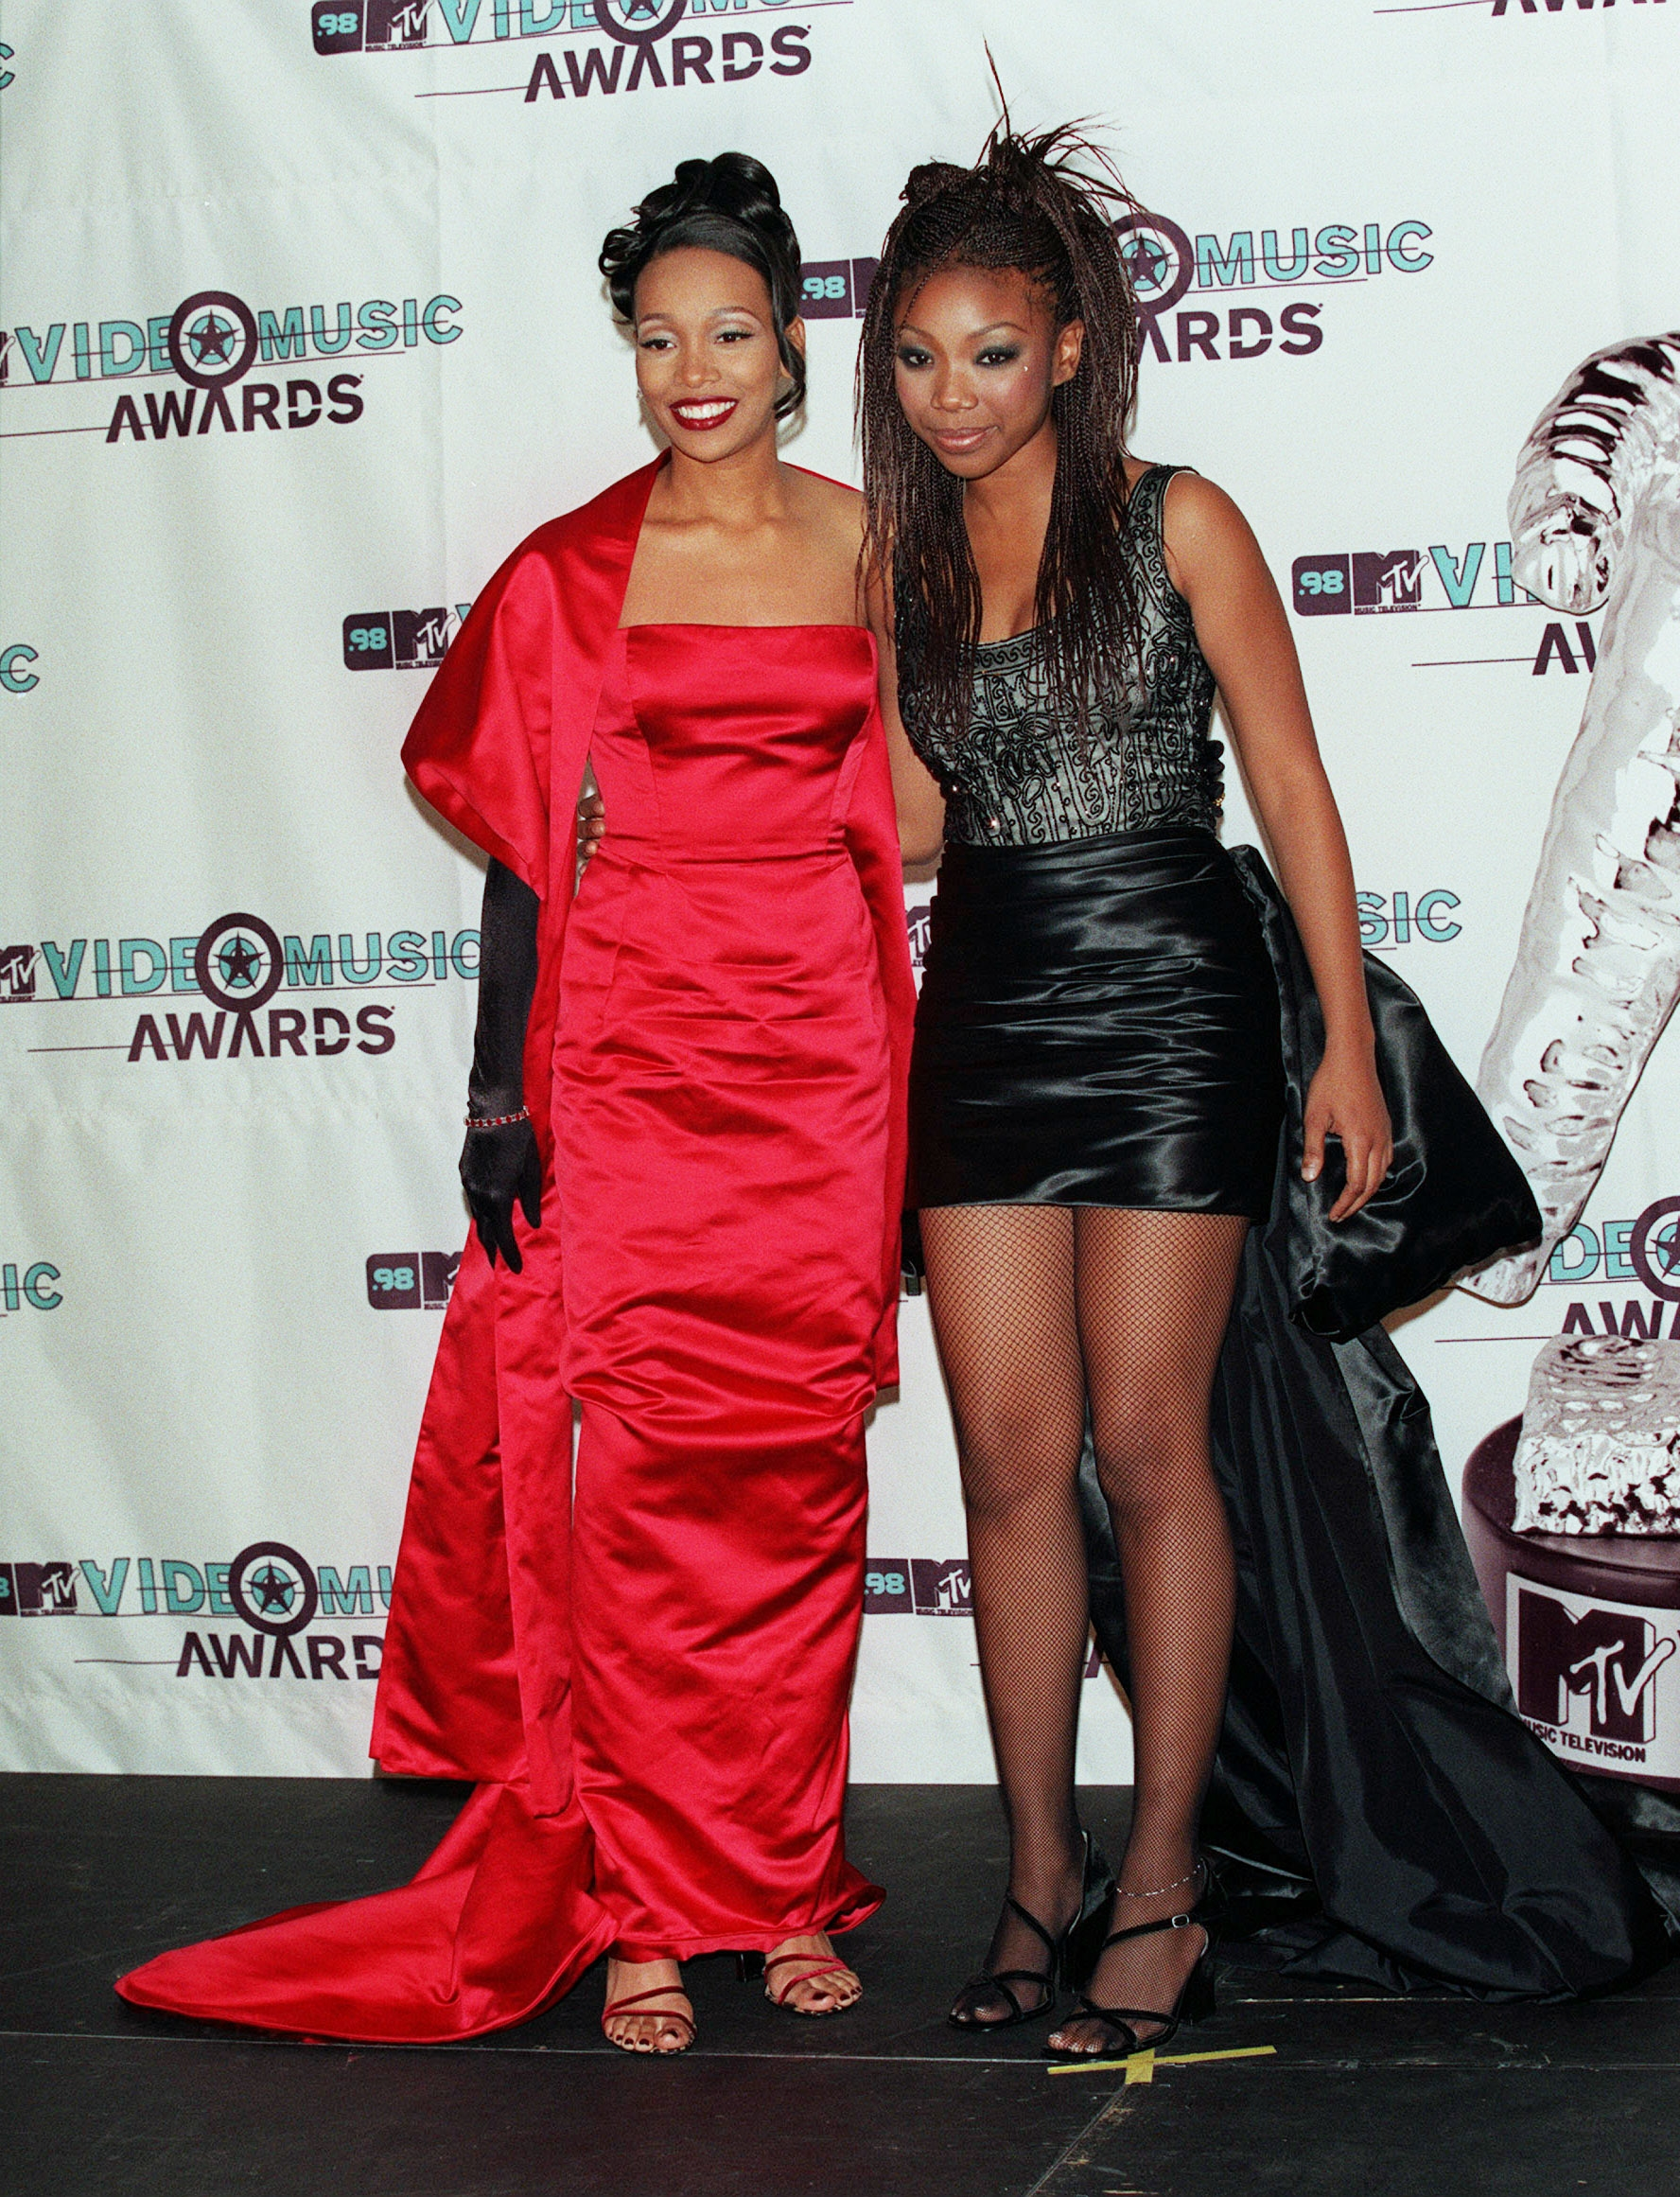 Dallas Austin Confirms Monica Punched Brandy In The Face At The VMAs